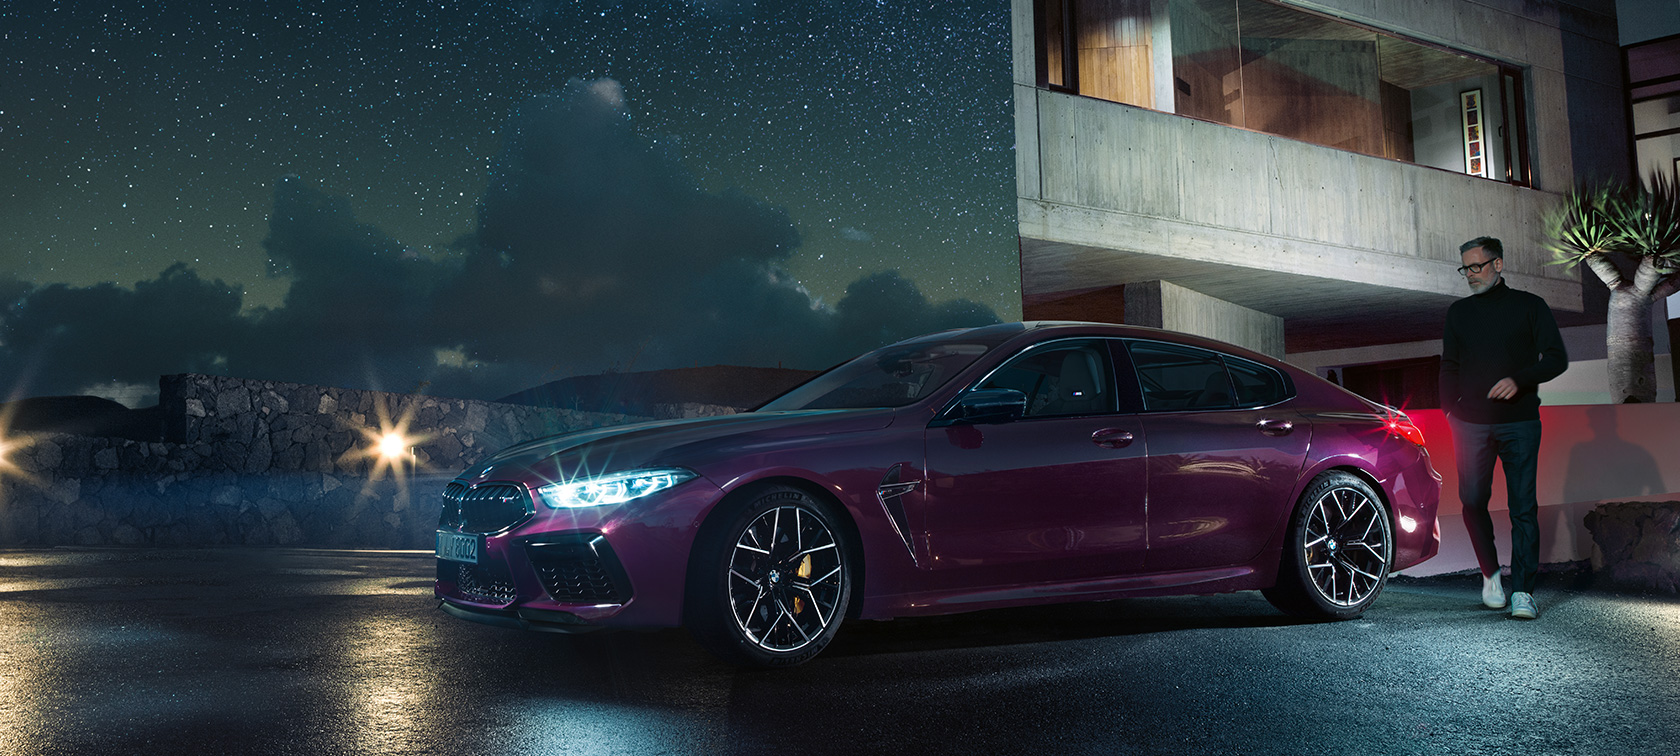 The M8 Bmw 8 Series Gran Coupe M Automobiles Highlights Bmw Ie